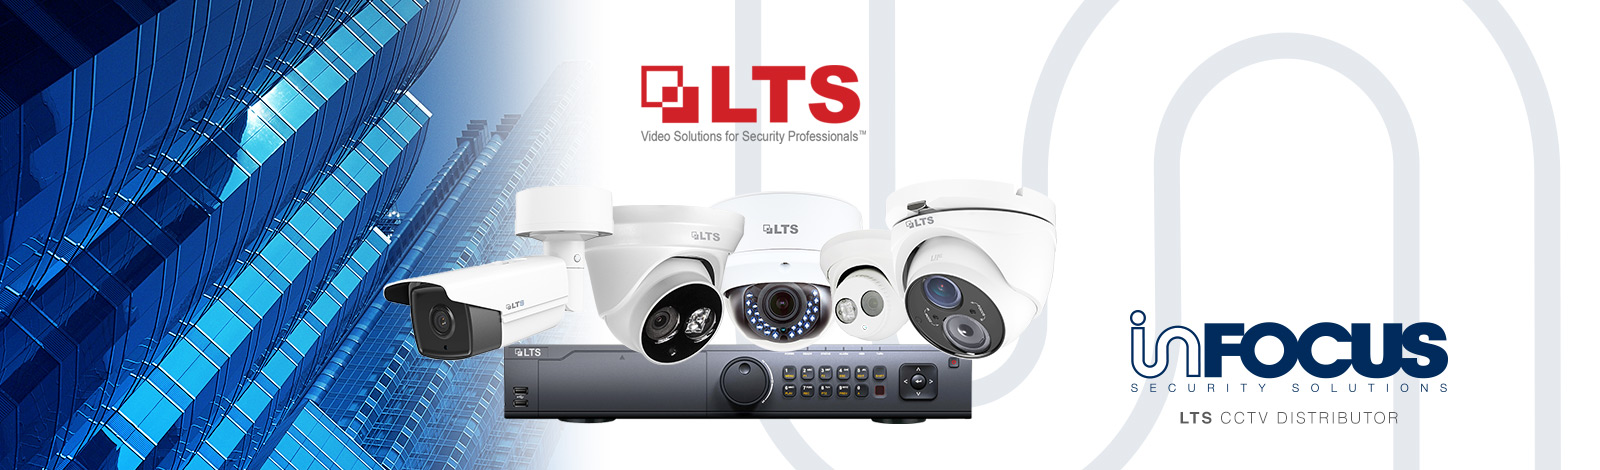 infocus security LTS CCTV distributor